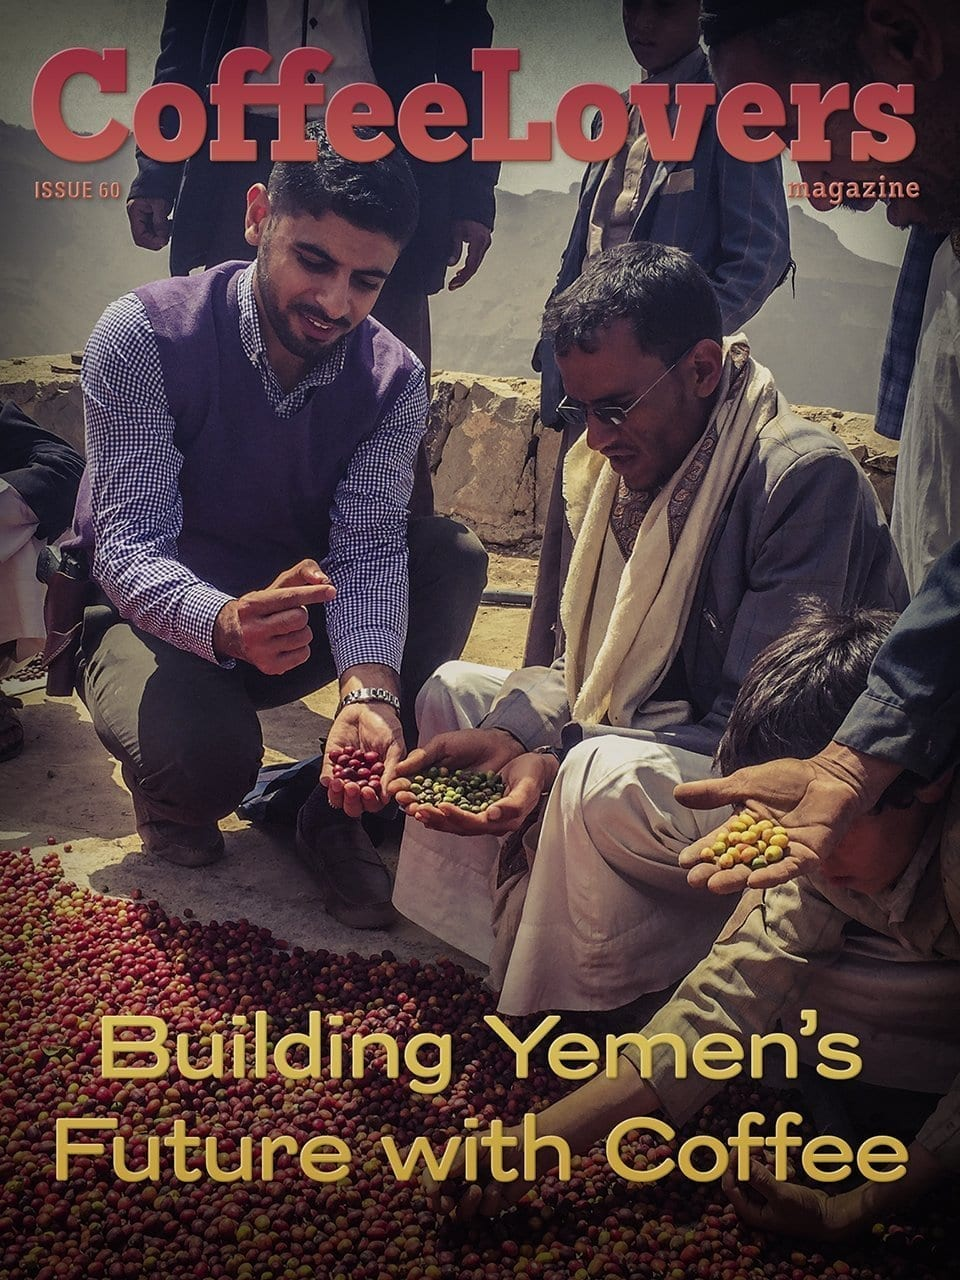 Building Yemen's Future with Coffee - Issue 60 Coffee Lovers Magazine